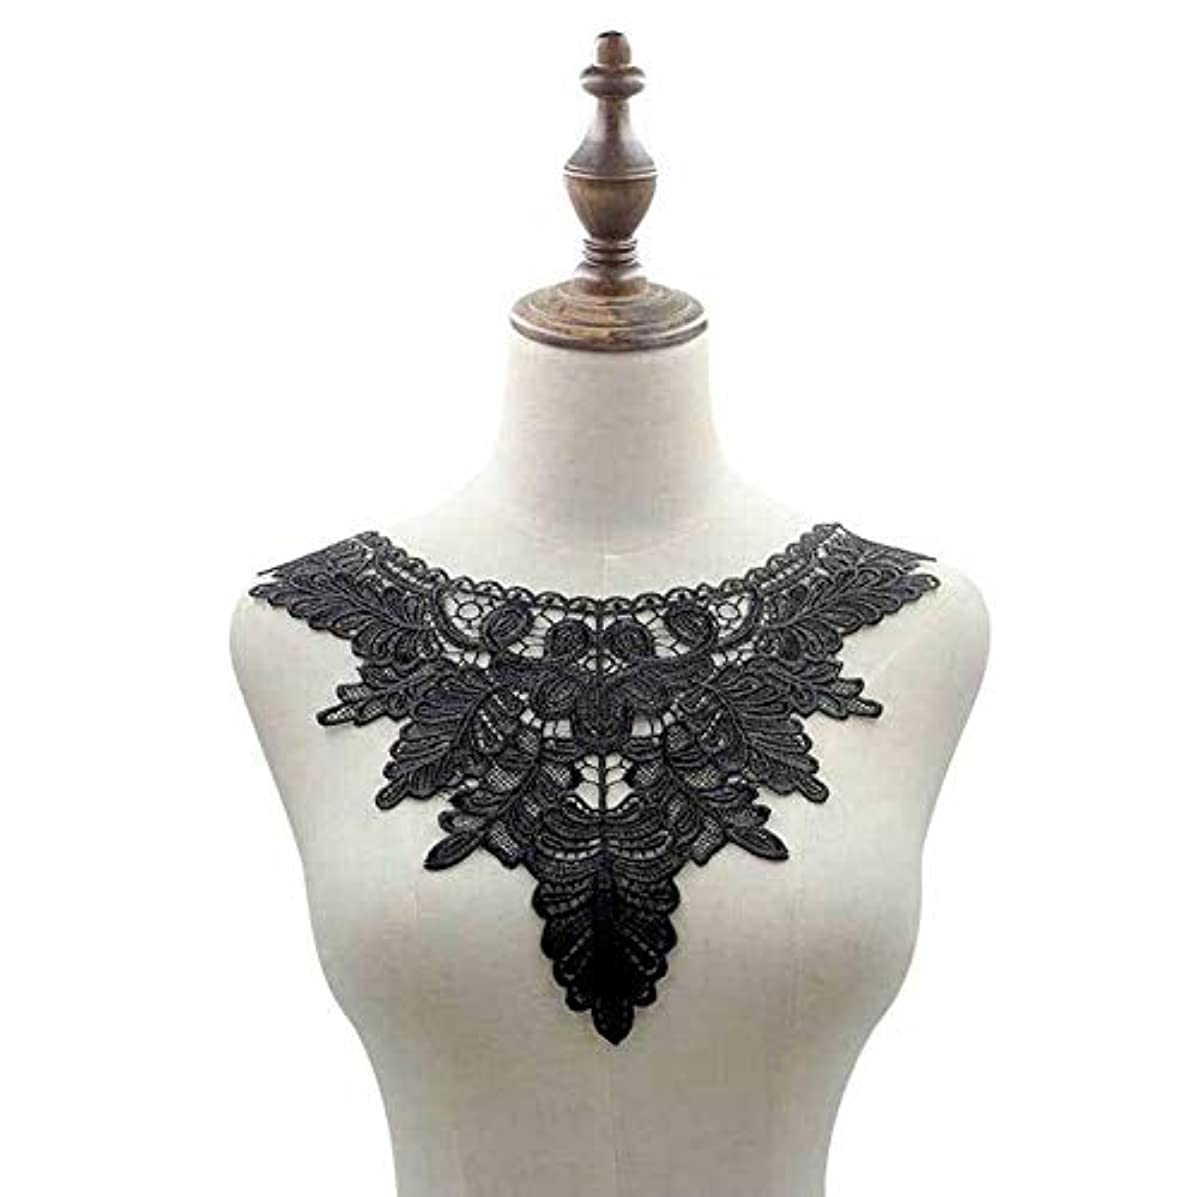 Black Embroidered Lace Trim Patches DIY Collar Lace Applique Trim Fabrics for Patchwork Sewing Supplies (Style 10)